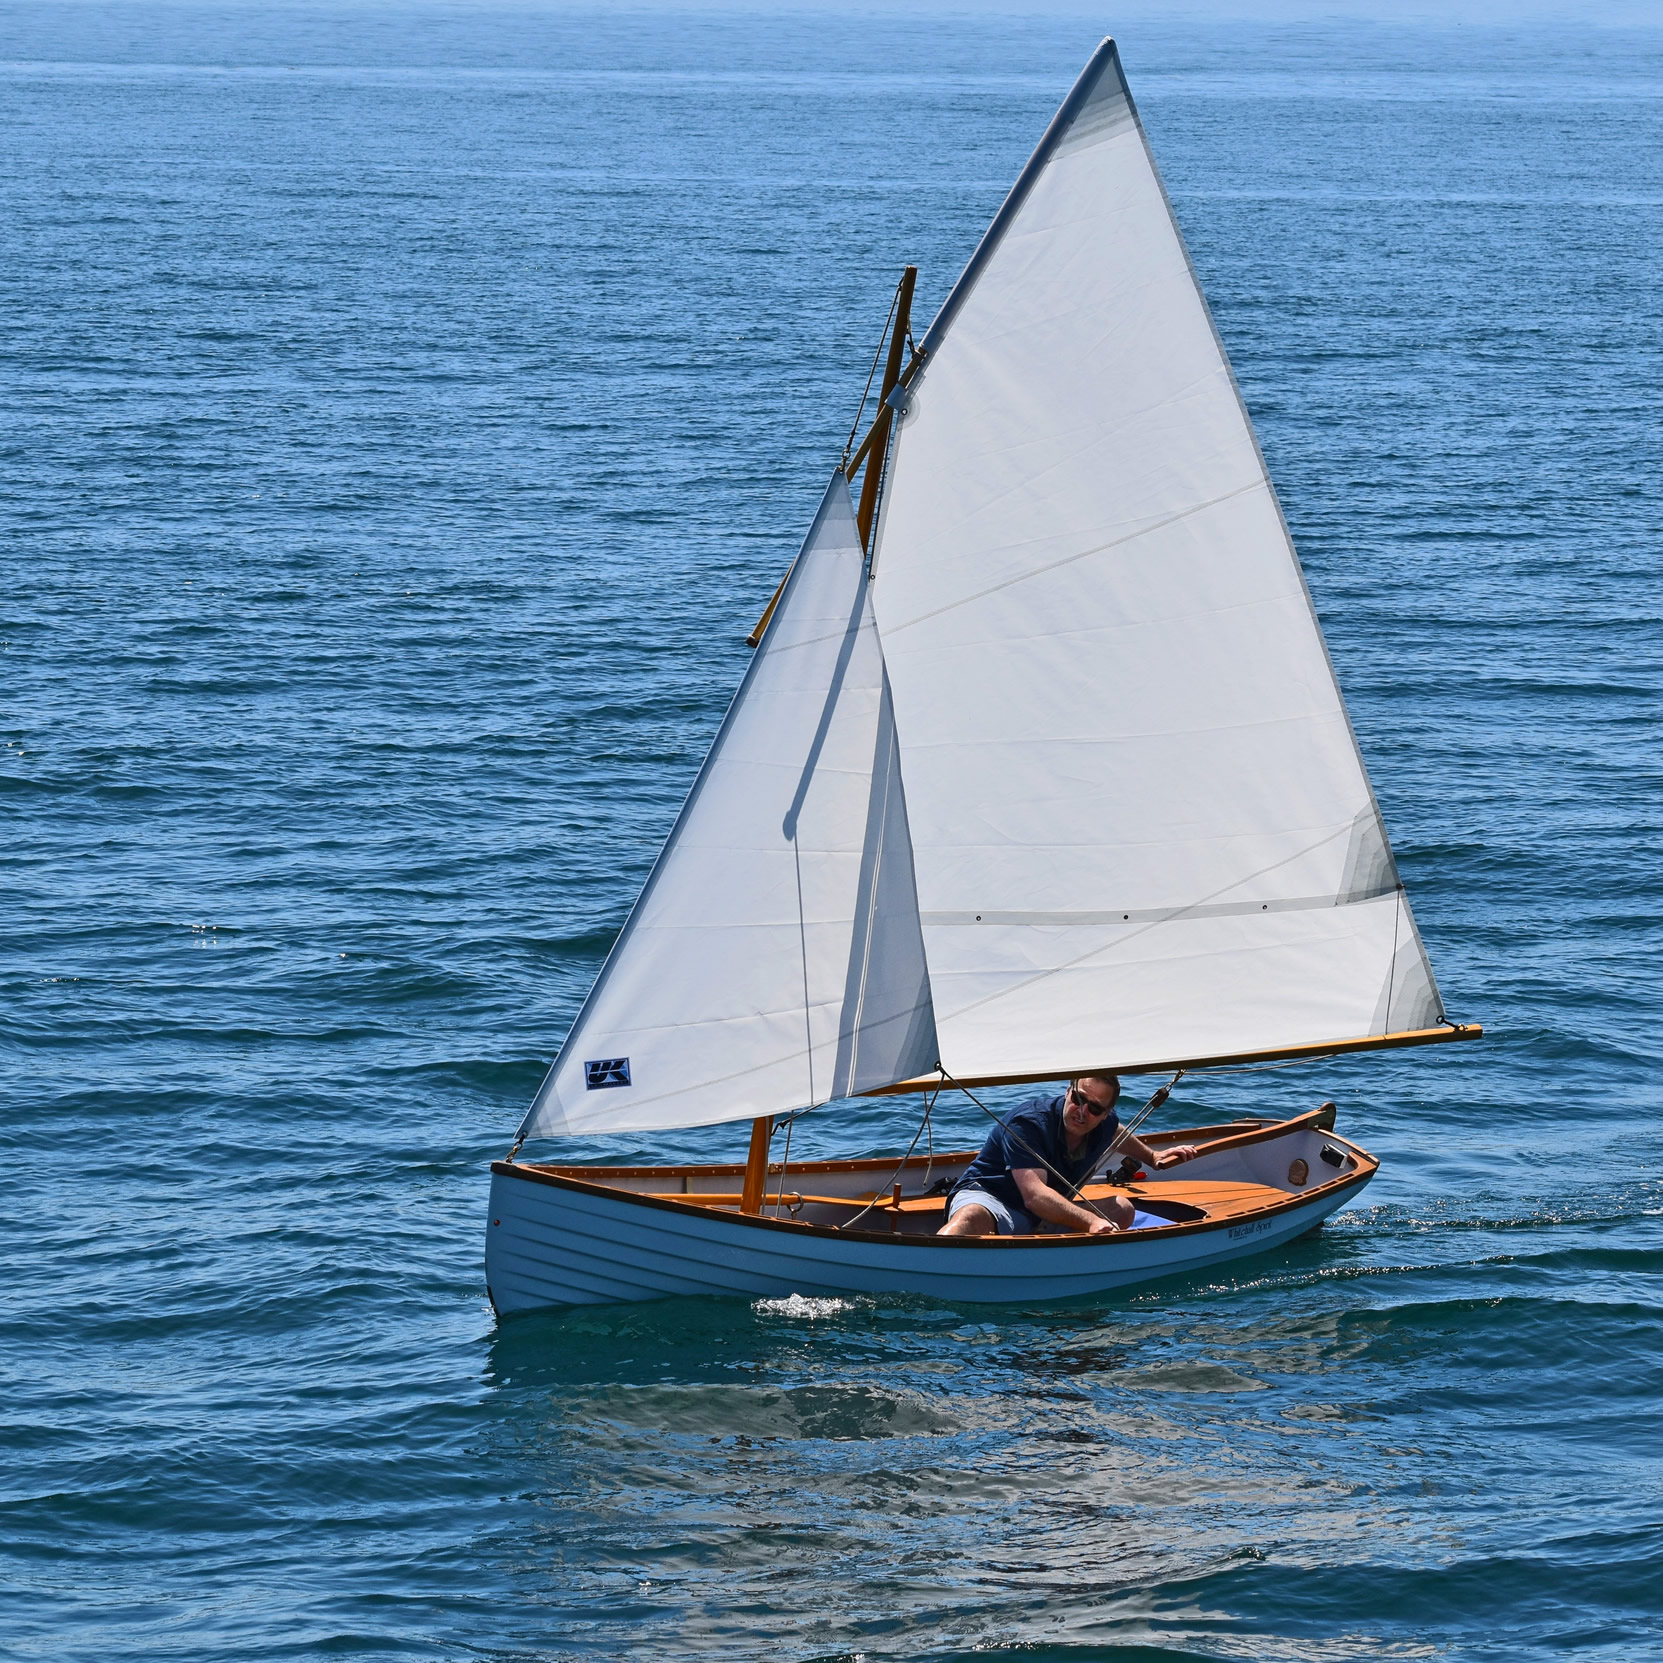 7-Classic-Whitehall-Spirit-14-Sailing-Rowboat-Whitehall-Rowing-and-Sail-DSC_0149-1663x1663